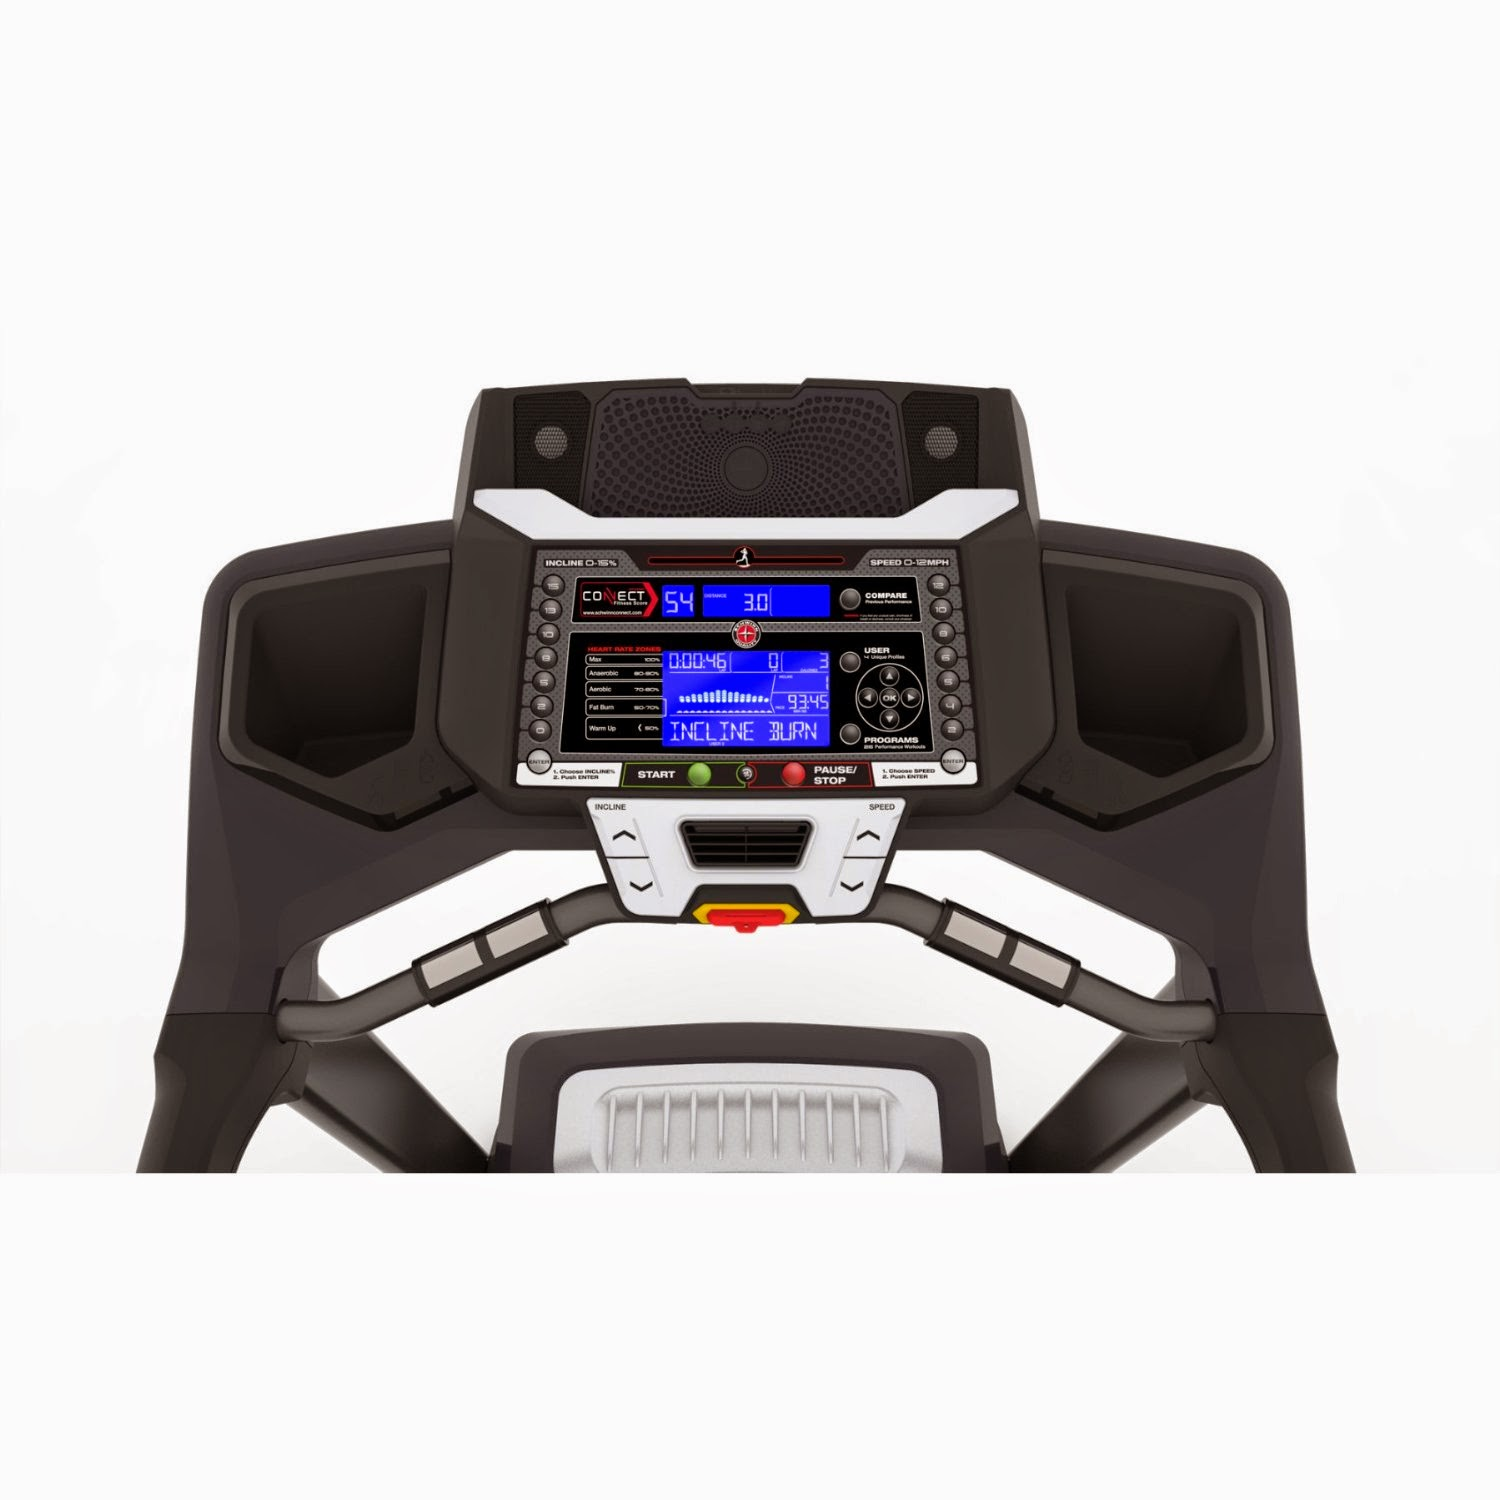 Schwinn 870 console, dual screen, 2 screens, LCD blue backlit display shows workout stats